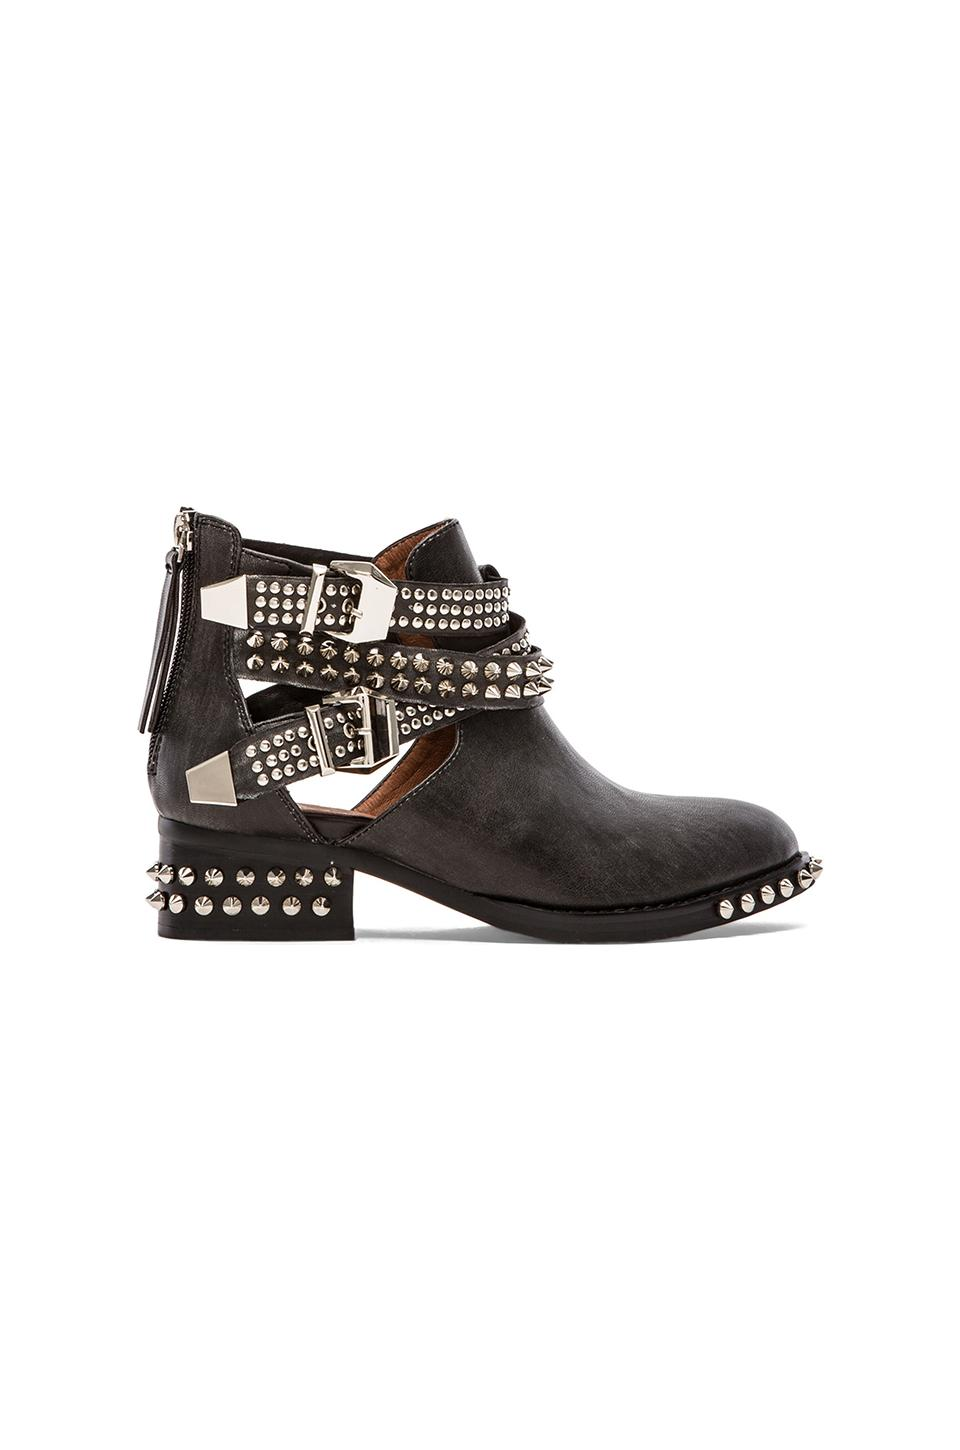 Jeffrey Campbell Everly Embellished Boot in Black Washed